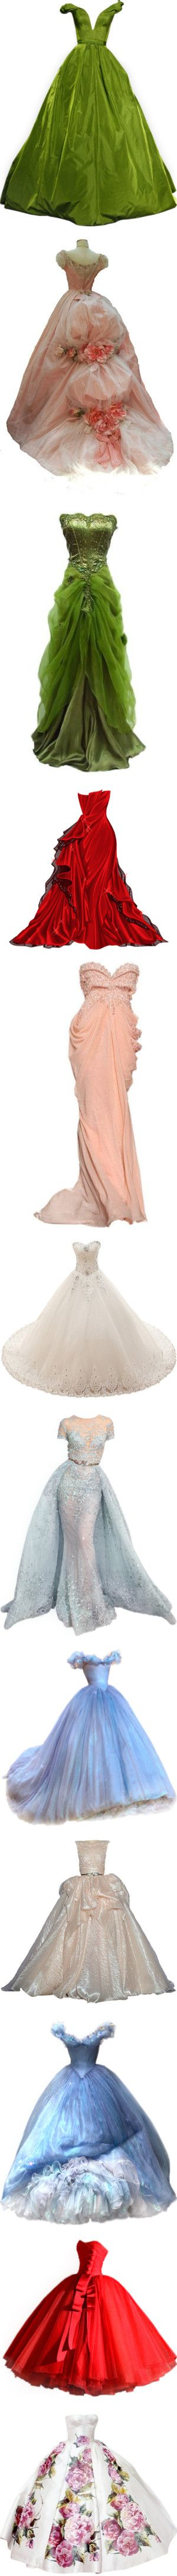 Gorgeous Princess Gowns! by renete on Polyvore featuring dresses, gowns, long dresses, vestidos, green dress, green gown, couture evening gowns, couture evening dresses, brown dress and green evening dress